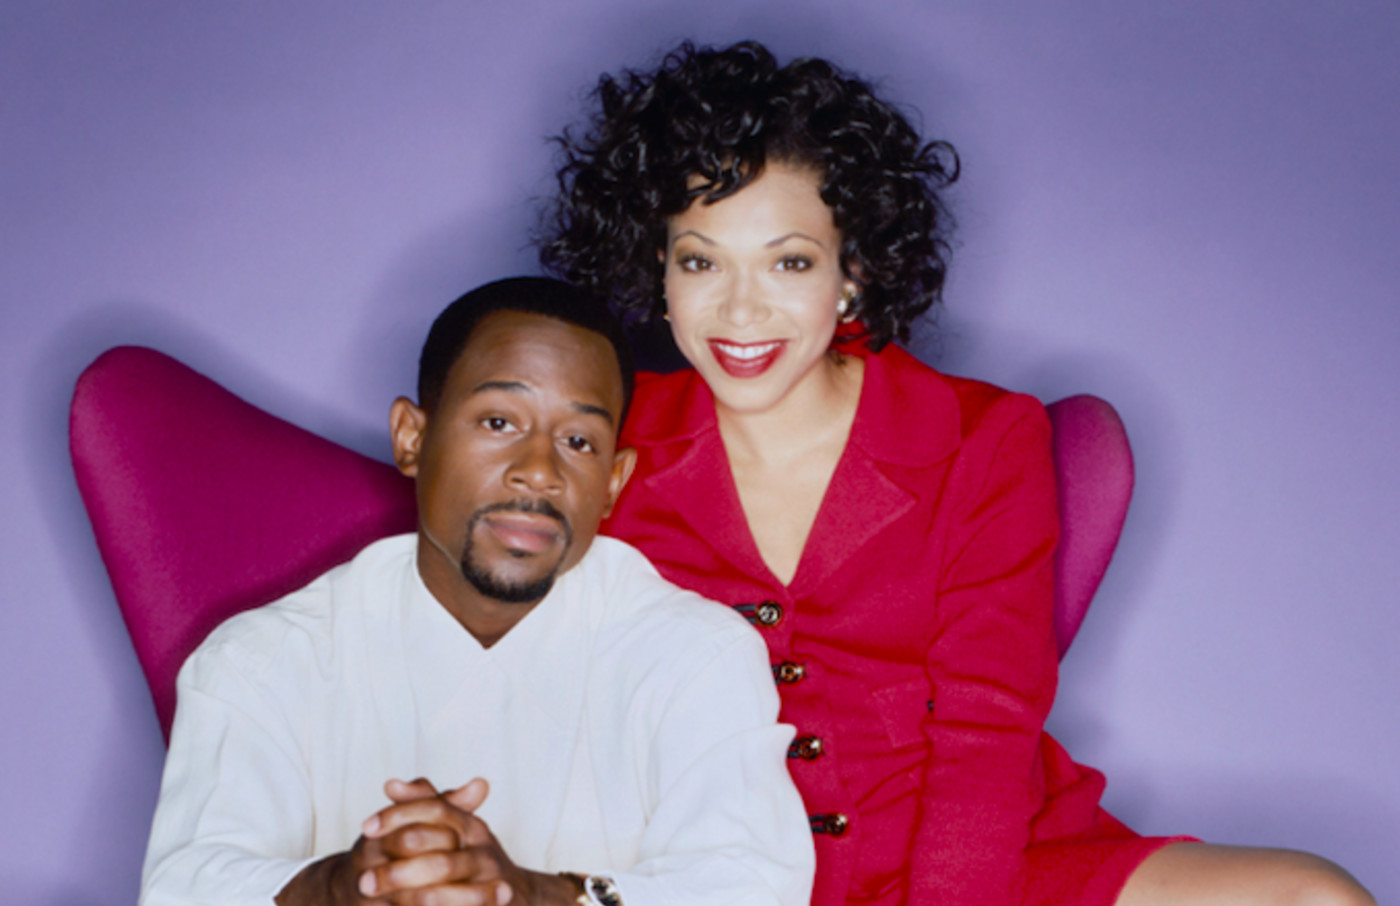 Martin Lawrence and Tisha Campbell